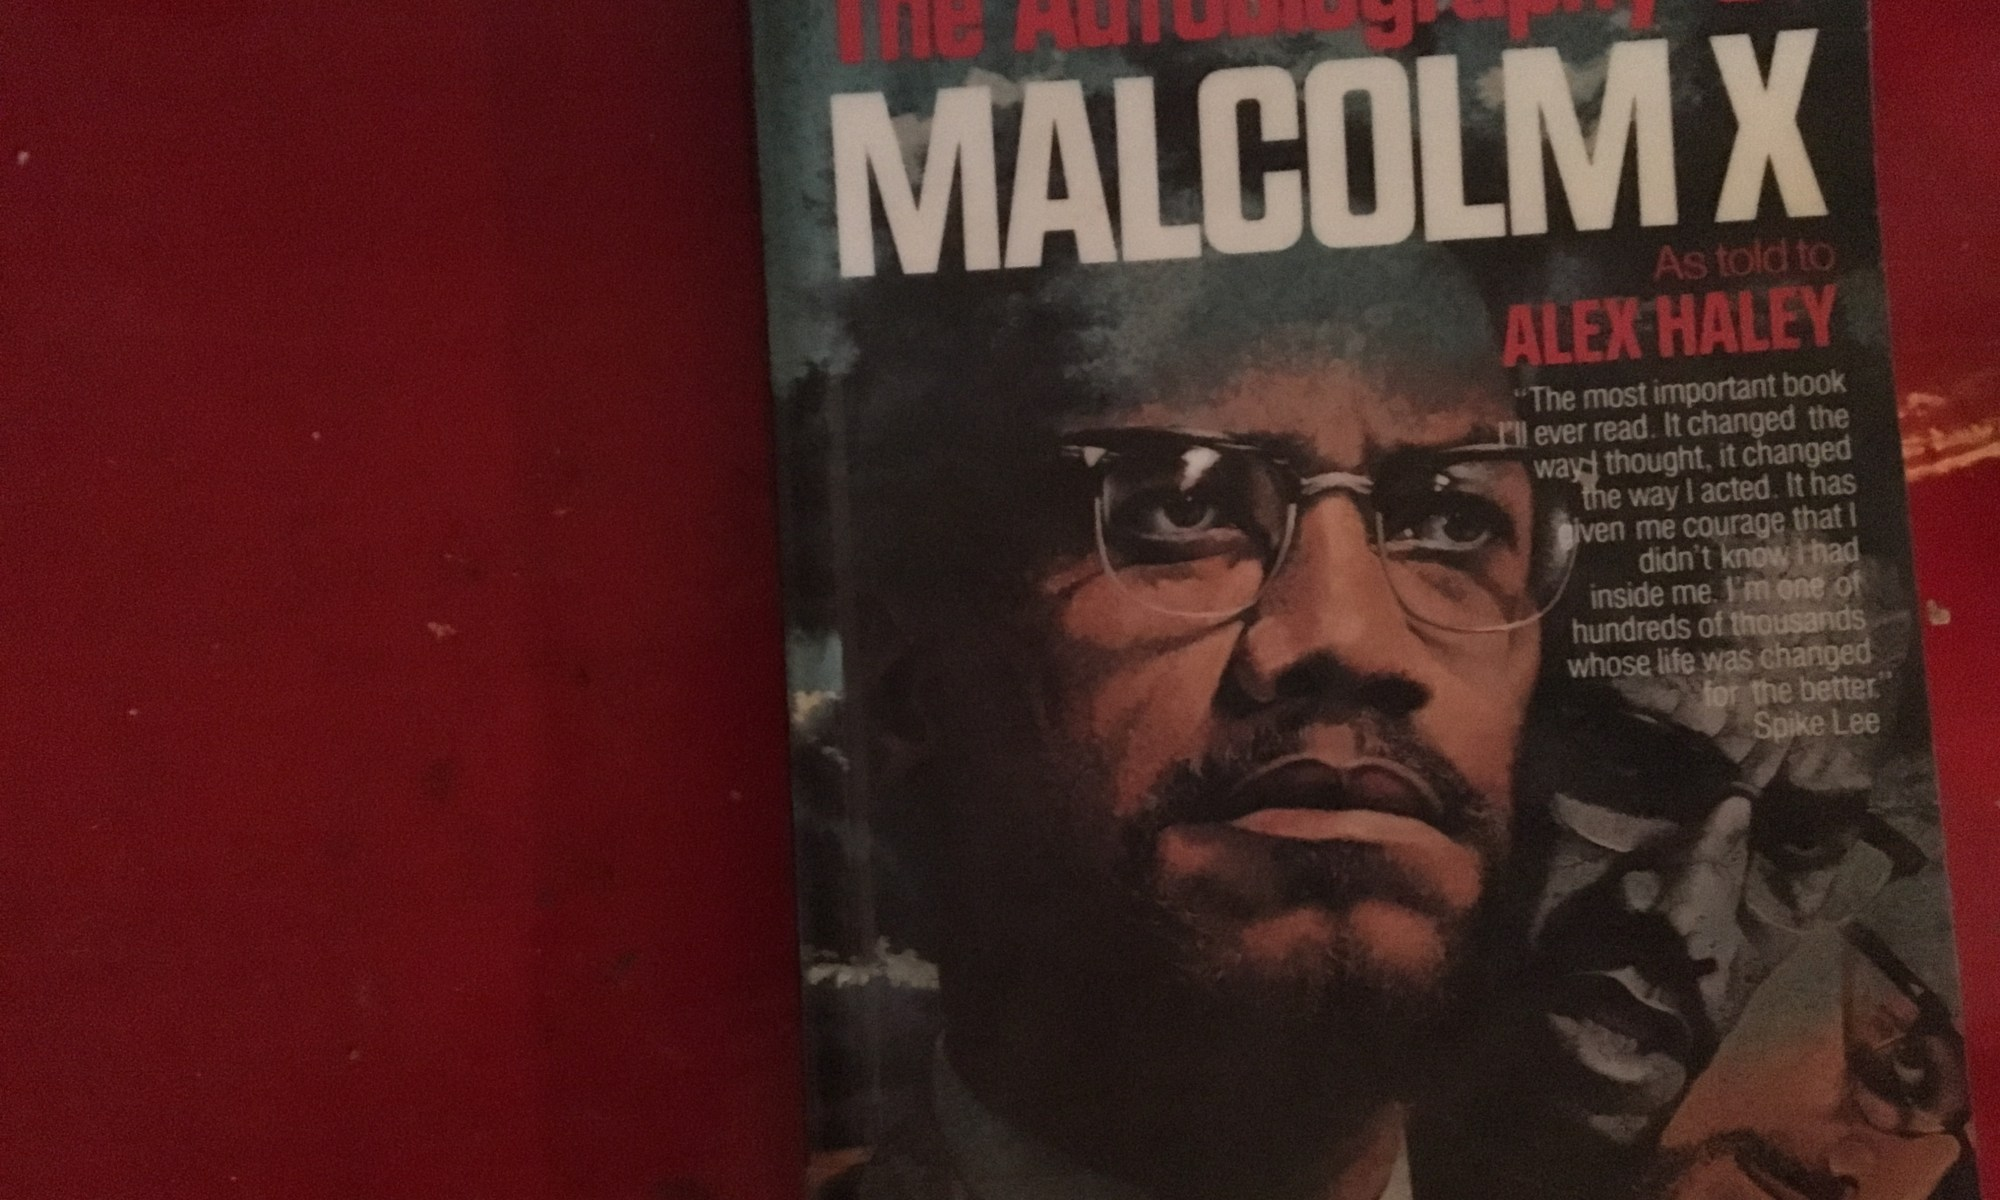 Noted: Autobiography of Malcolm X